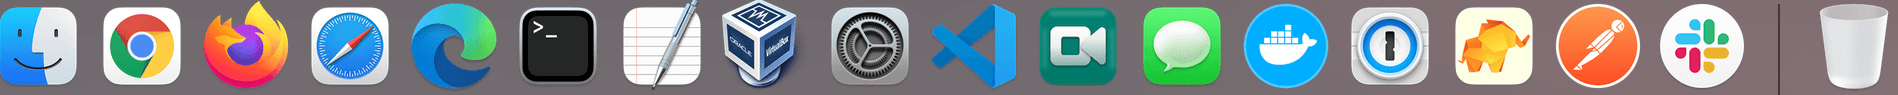 OS X Dock with apps